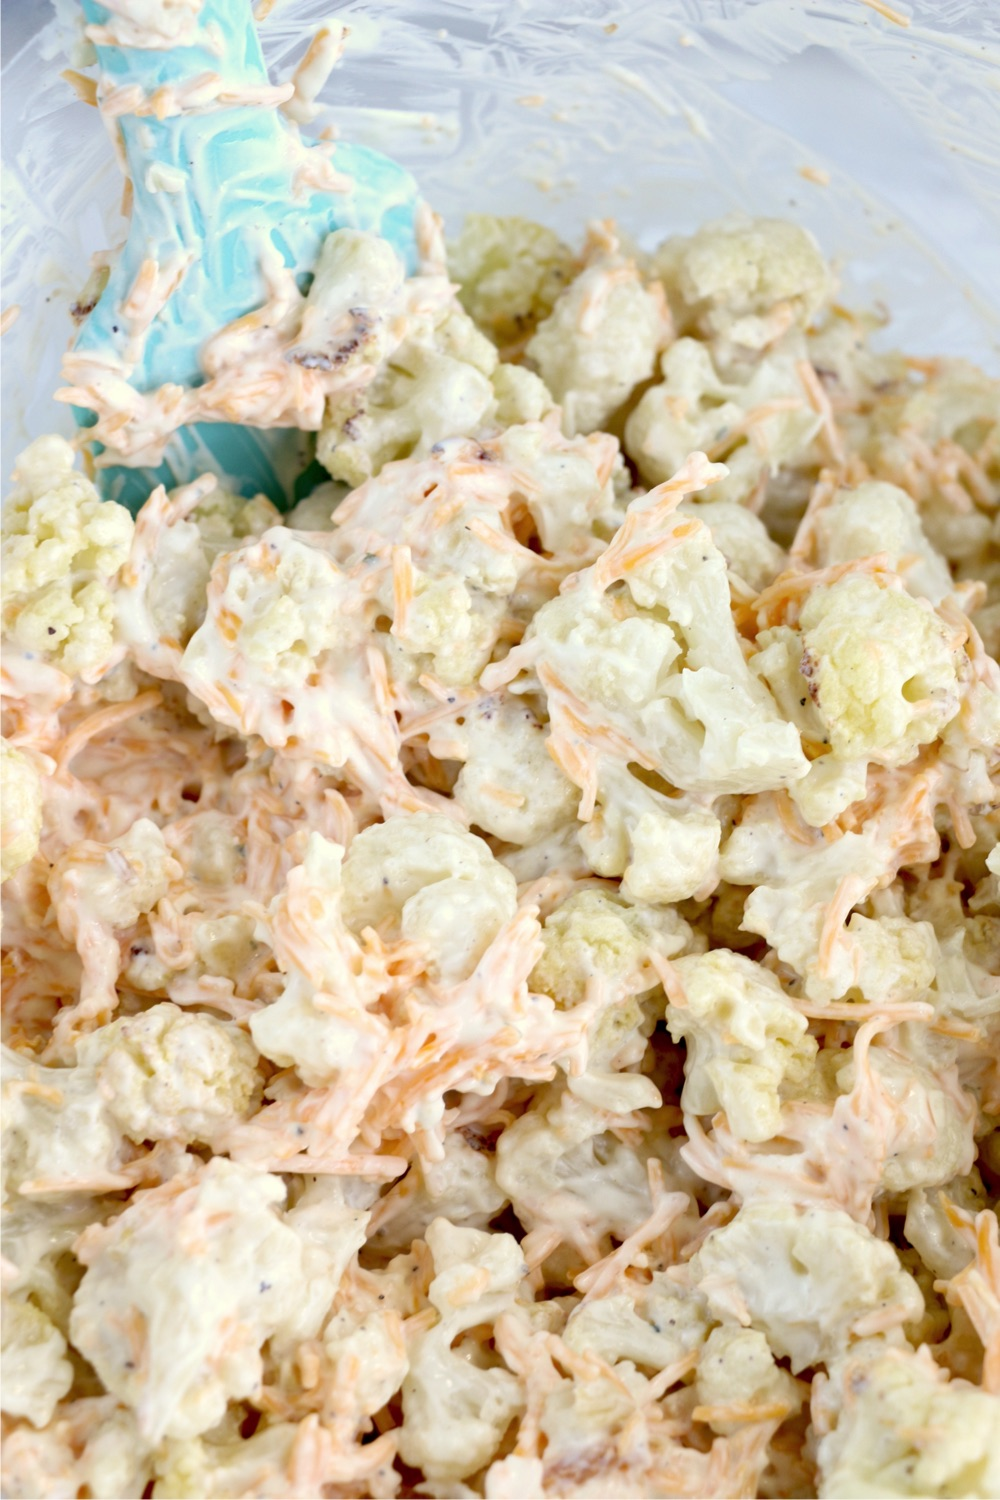 Mixing cauliflower florets with sour cream mixture